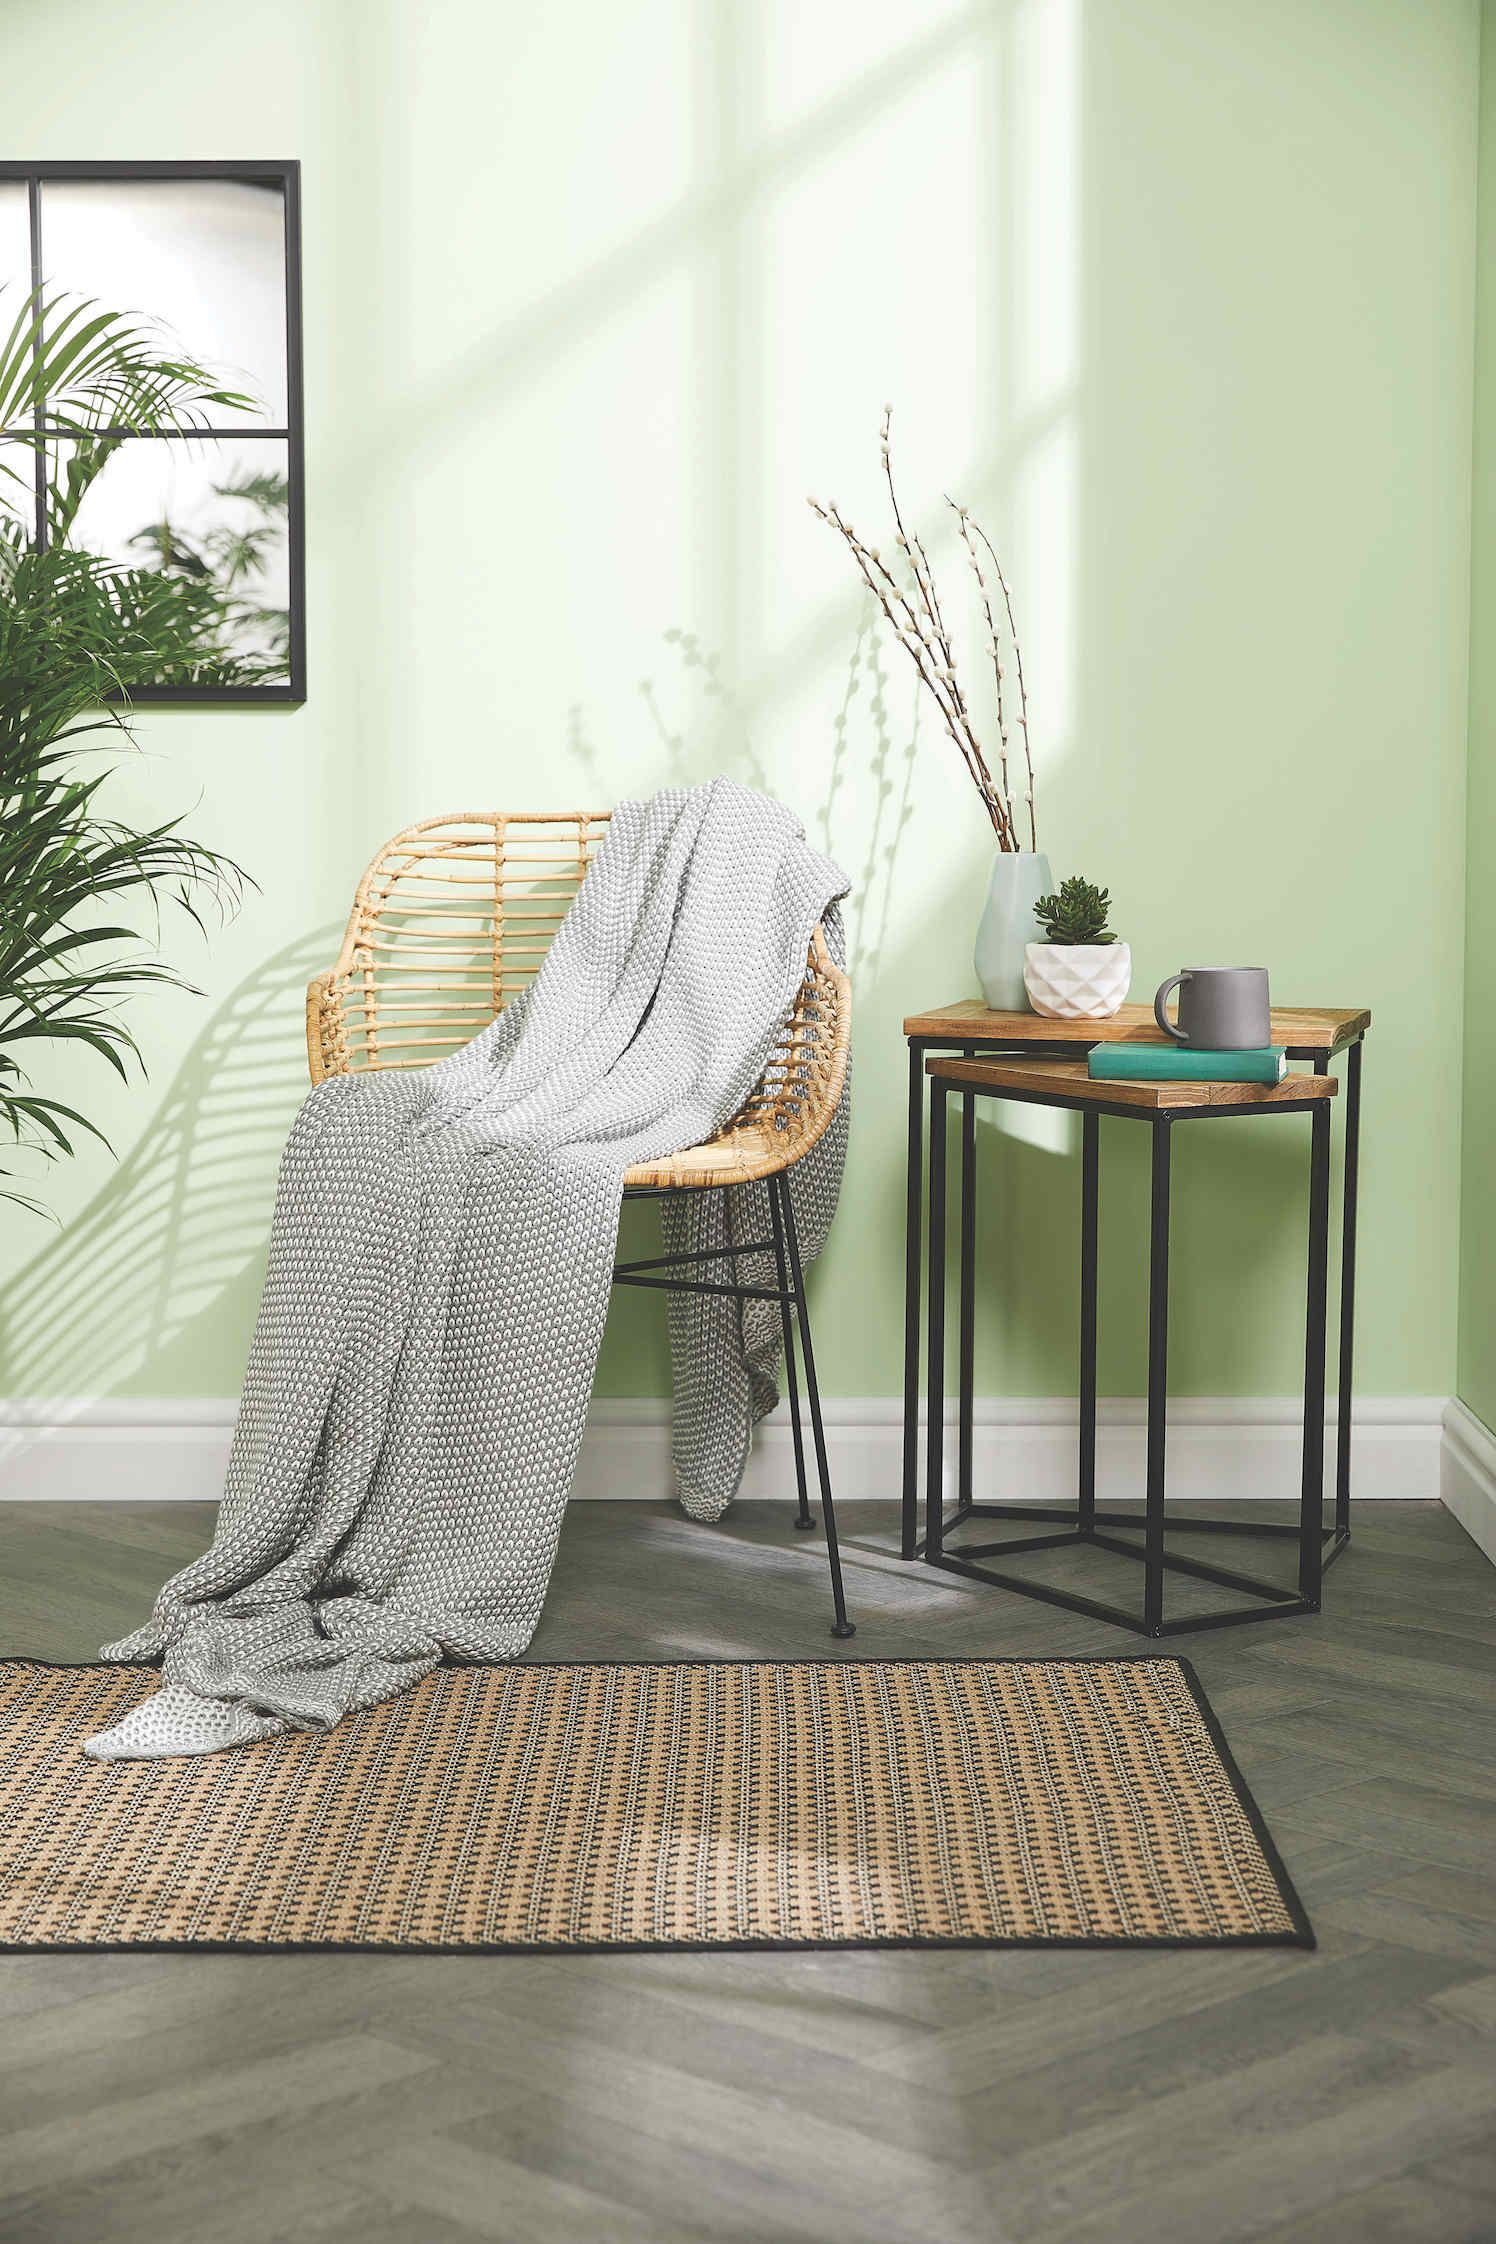 Picture of: Aldi S Nest Tables 250 Cheaper Than Dunelm Aldi Special Offers